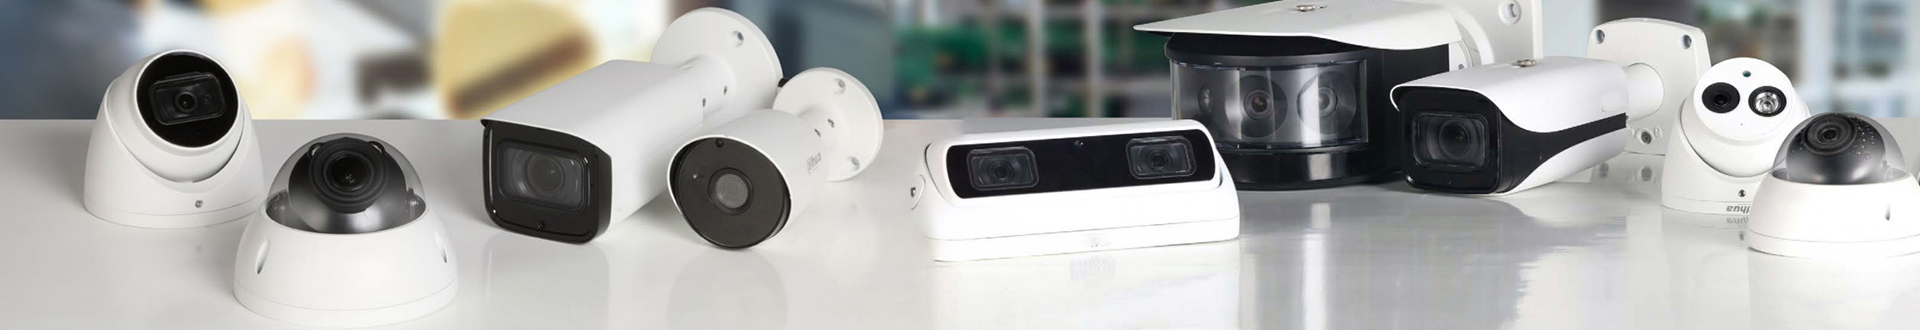 Four Features and Seven Advantages of NVR Compared with DVR